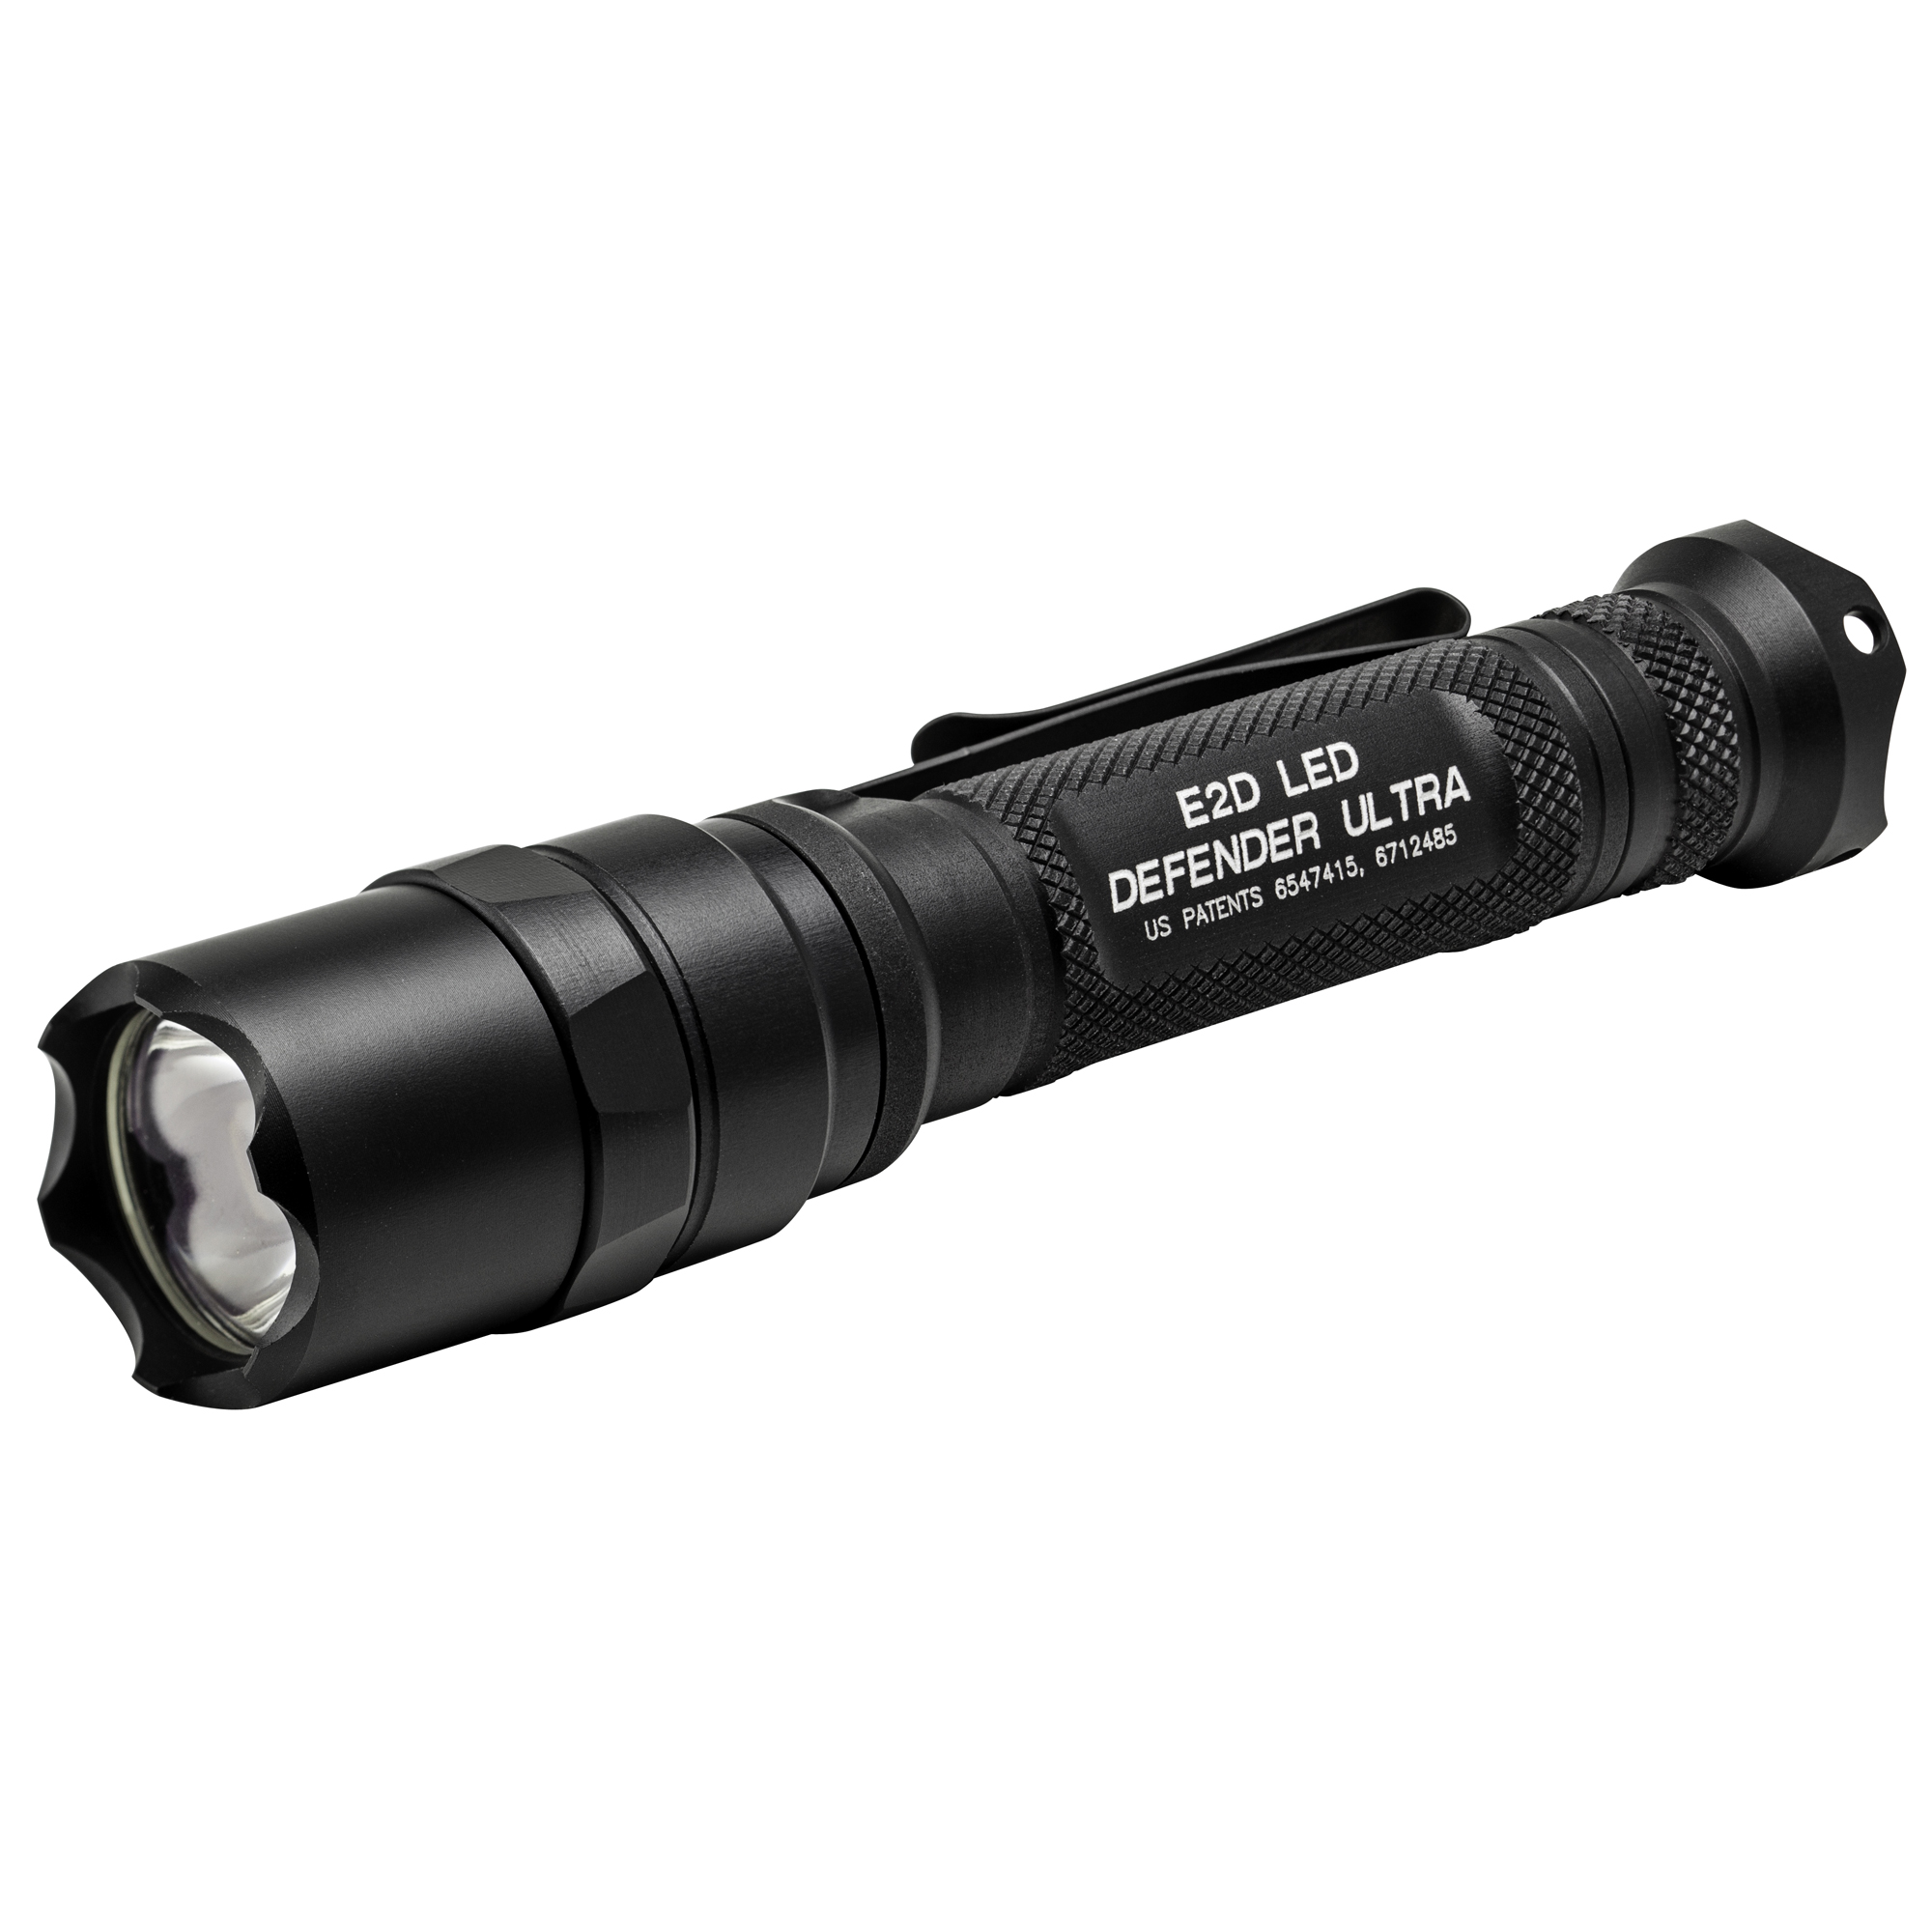 """SureFire has developed the superlative everyday-carry tactical light. The Defender lives up to its name in more ways than one. Machined from aerospace aluminum"""" its crenellated Strike Bezel(R) and scalloped tail cap turn this robust illumination tool into a potential impact weapon"""" so it can take a beating-or give one if necessary. The Defender body also features a Type III Mil-Spec hard-anodized coating for abrasion and corrosion resistance in foul weather or other adverse environments. A bolstered dual-function pocket clip makes bezel-up or bezel-down pocket storage easy too. The dual-output E2D Defender Ultra (E2DLU-A) utilizes SureFire's virtually indestructible high-performance LED. The very heart of these slender and powerful lights"""" it pumps out an intense"""" 1""""000-lumen beam"""" precisely focused through our optimized Total Internal Reflection (TIR) lens. That's plenty of output to momentarily disorient virtually any adversary and gain a crucial tactical advantage. The Ultra adds the extra value of dual-output capability. Clicking its tail cap twice yields a battery-saving 5 lumens"""" ideal for the most basic low-light tasks such as map reading and other close-range applications. And with a continuous low-output run time of 63 hours"""" you can trust the Ultra to keep you company from sunset to sunrise."""